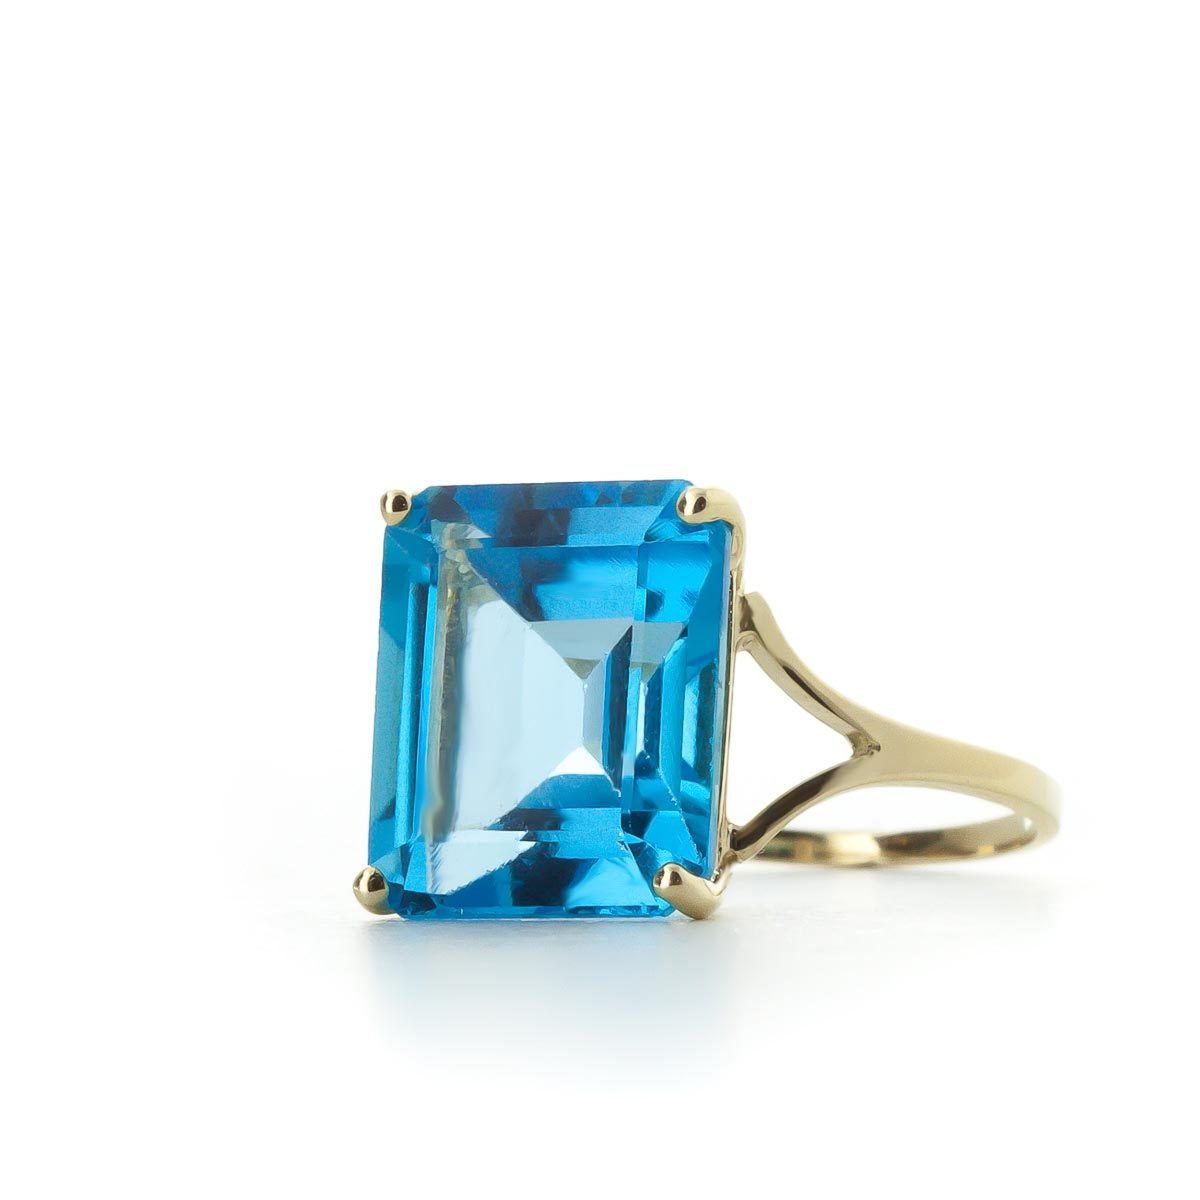 Blue Topaz Ring 7.0ct in 9ct Gold